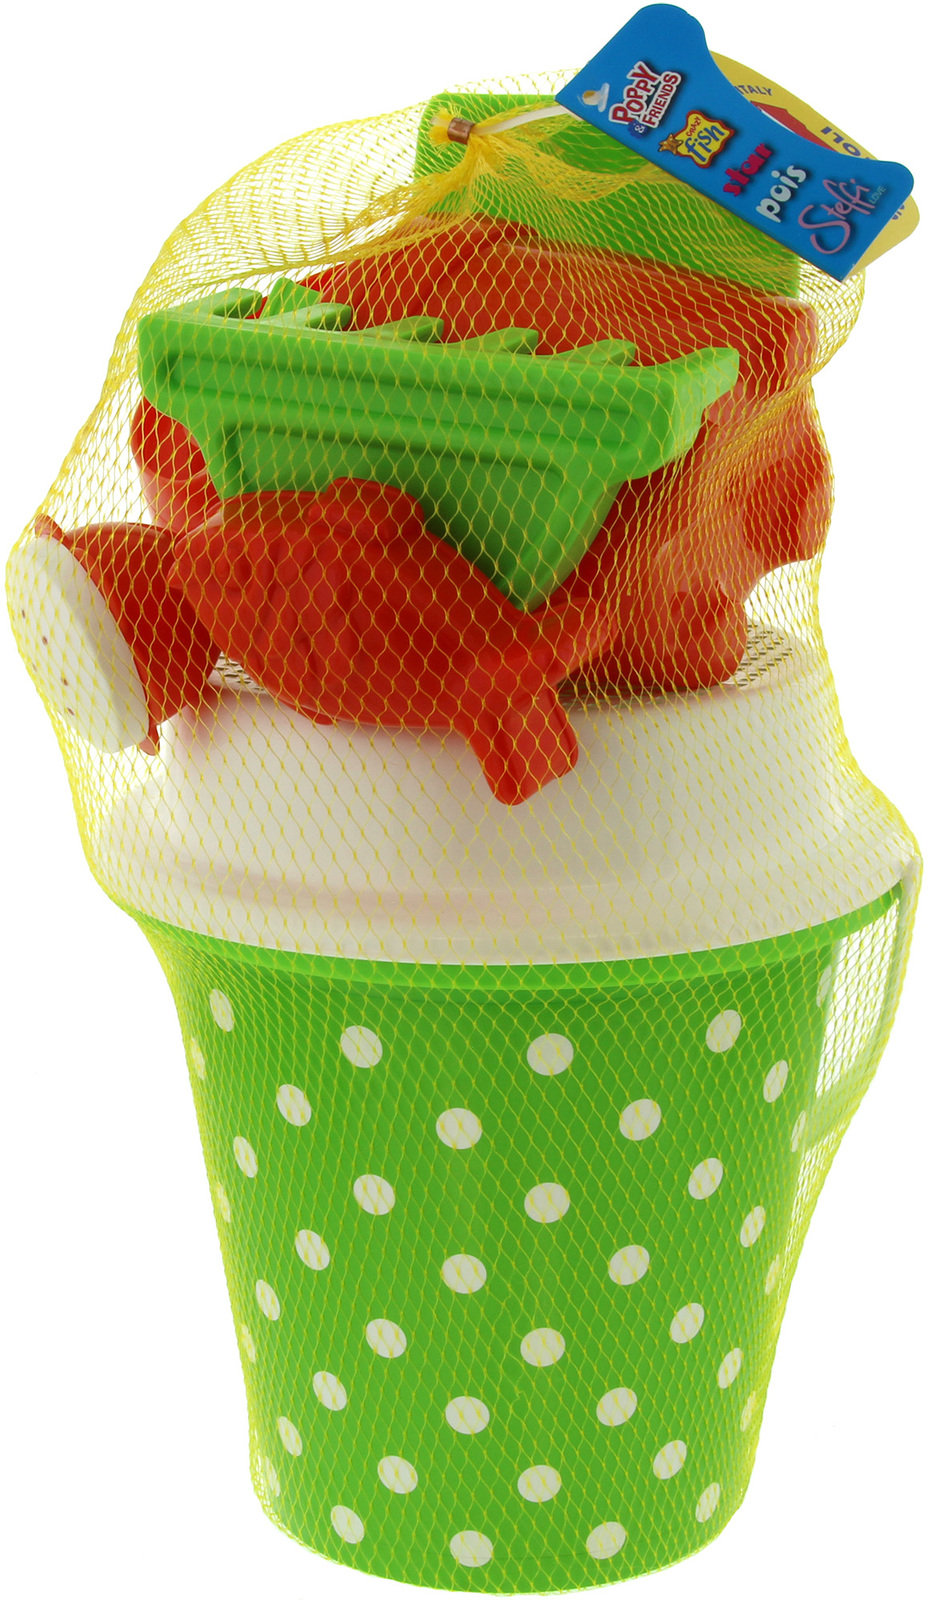 Polka Dot Bucket Set image